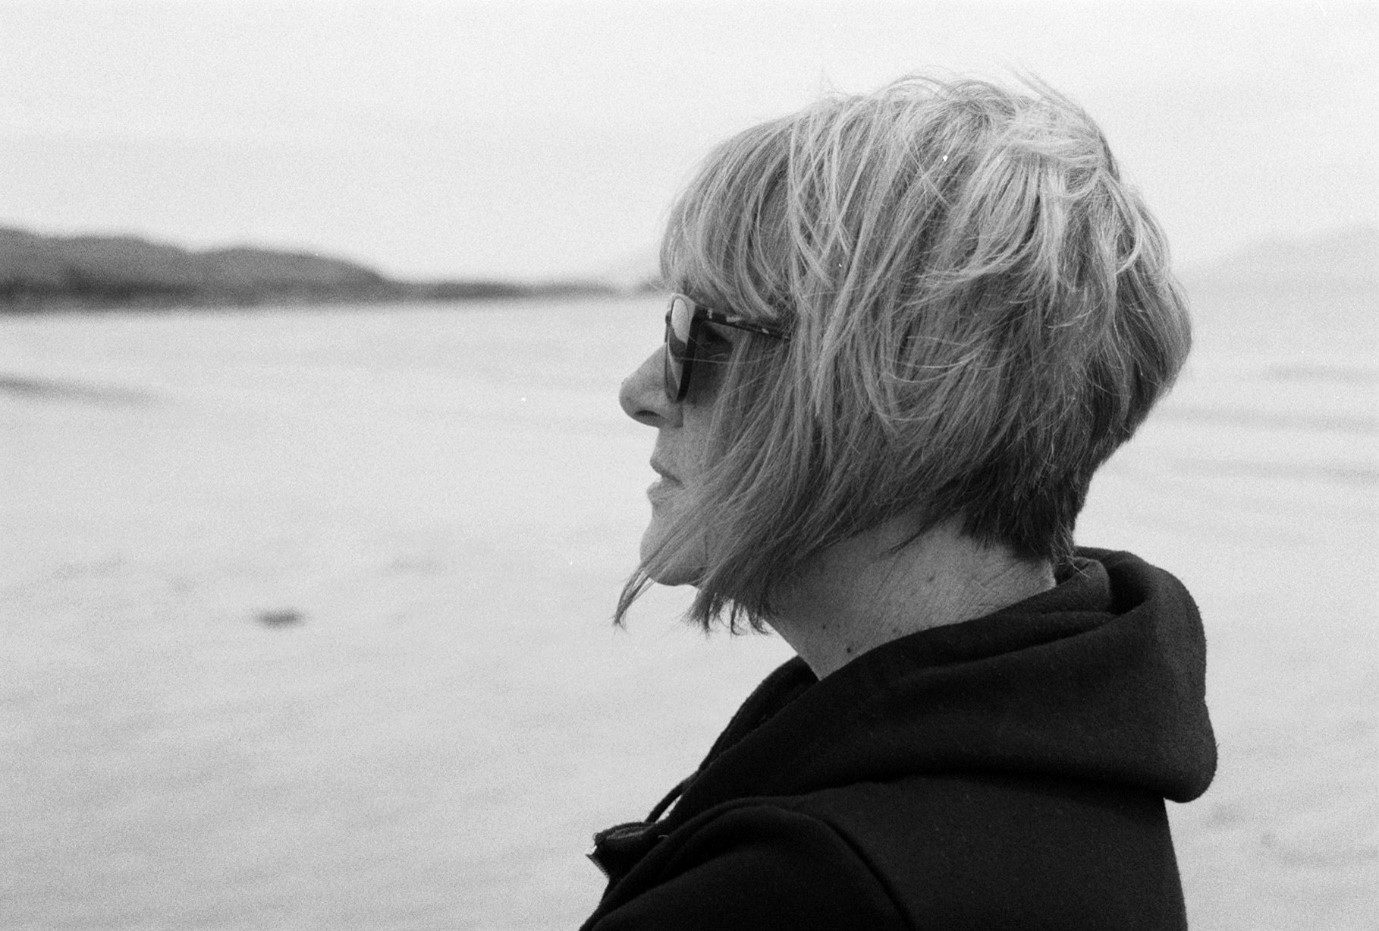 My beautiful mother on Aberffraw beach on Anglesey, she didn't realise I was taking the photo. (Sorry Mam!) Shot on FP4.